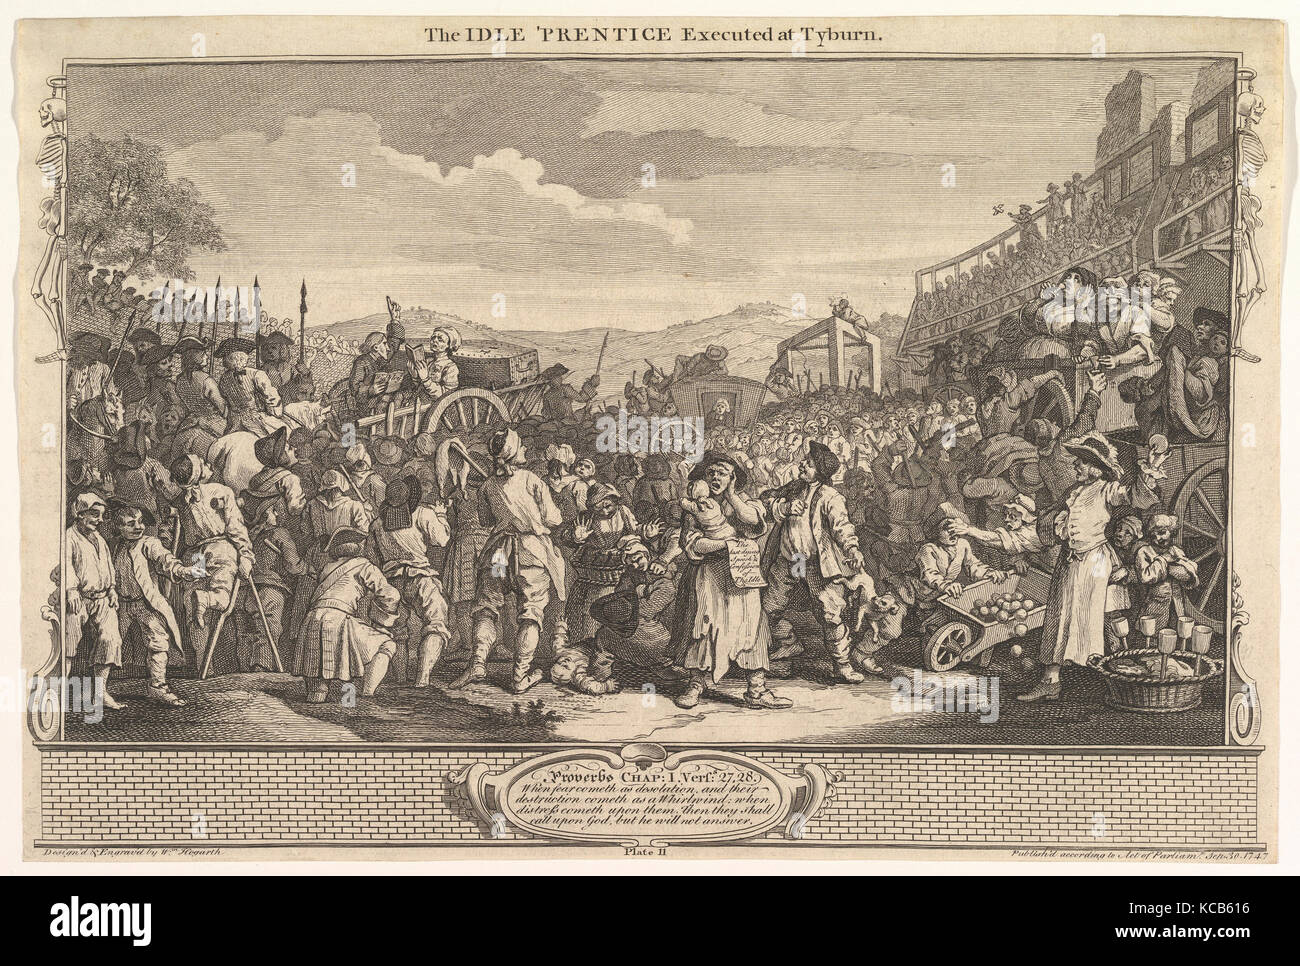 The Idle 'Prentice Executed at Tyburn: Industry and Idleness, plate 11, William Hogarth, September 30, 1747 Stock Photo